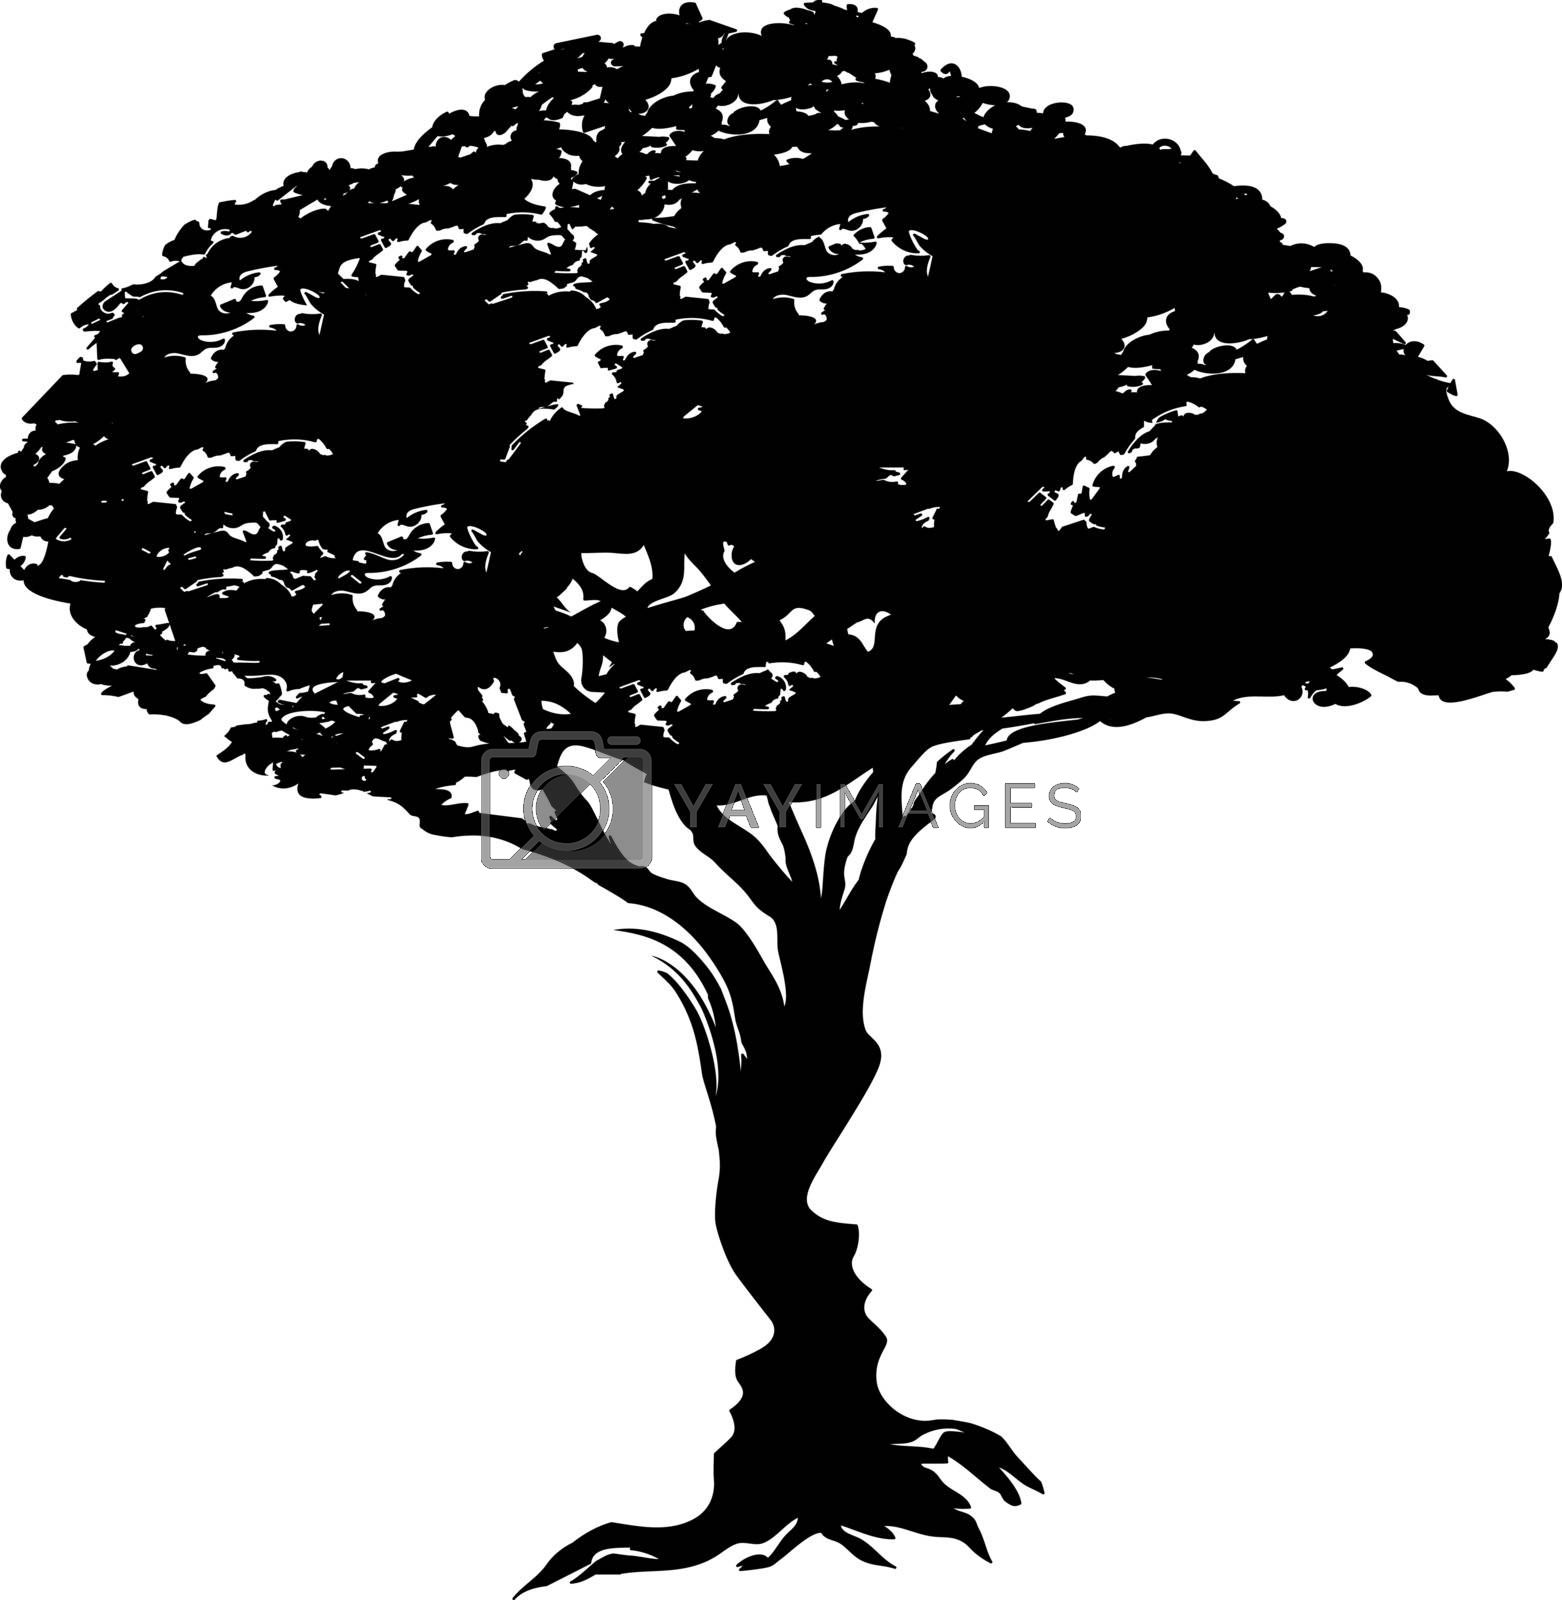 An illustration of an abstract tree optical illusion formed from a man and womans face concept design